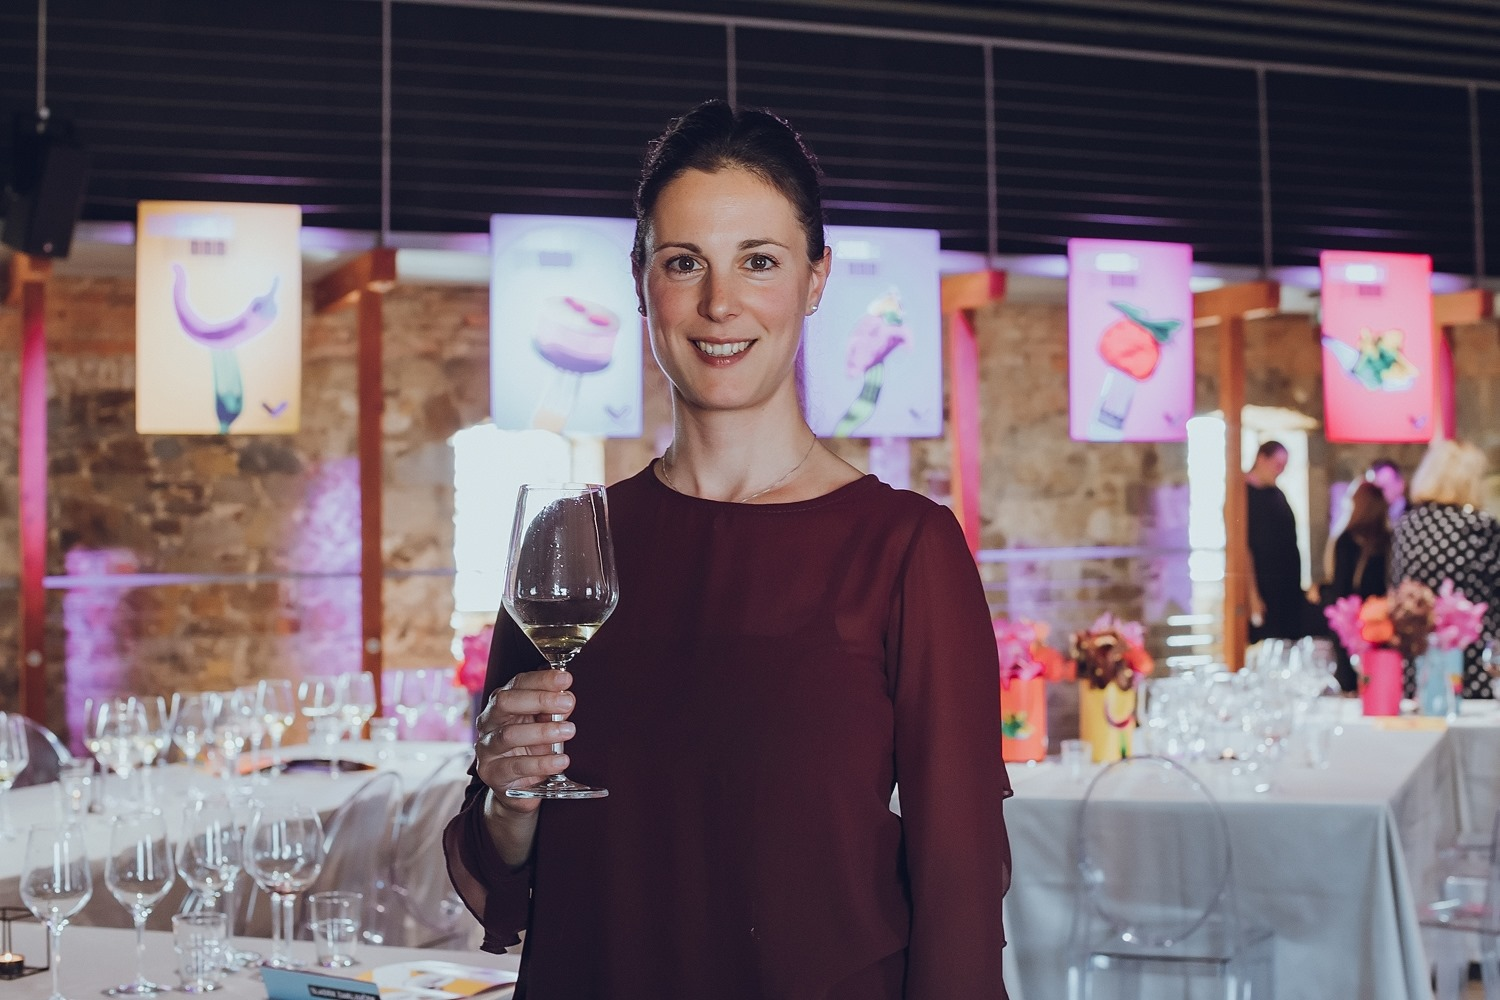 Cheers from Wine Dine Slovenia: Food blogger Denise Rejec holds a glass of white wine